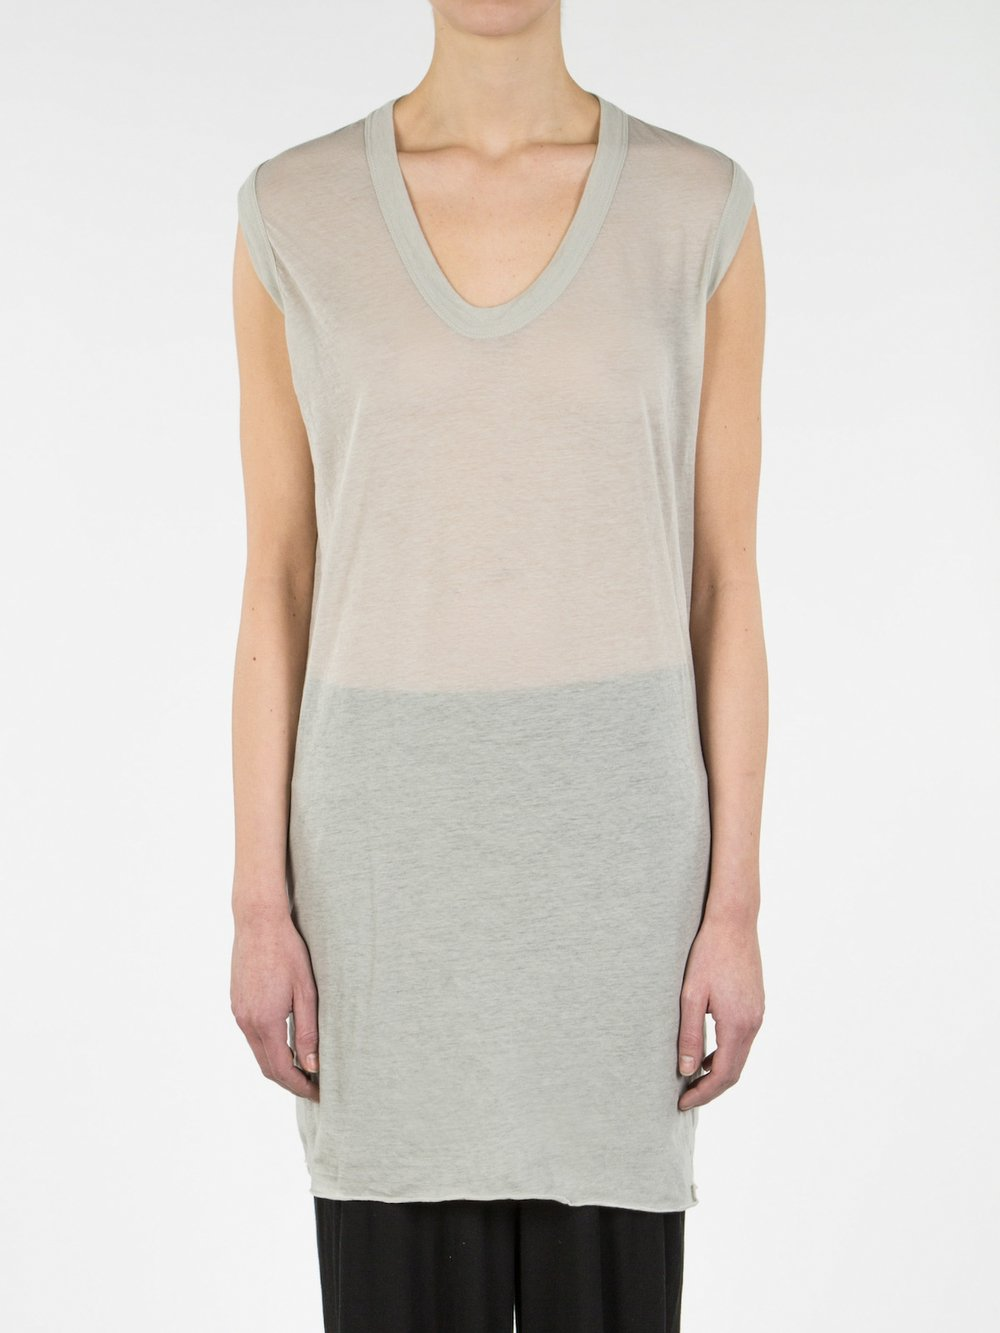 RICK OWENS - SLEEVELESS TEE